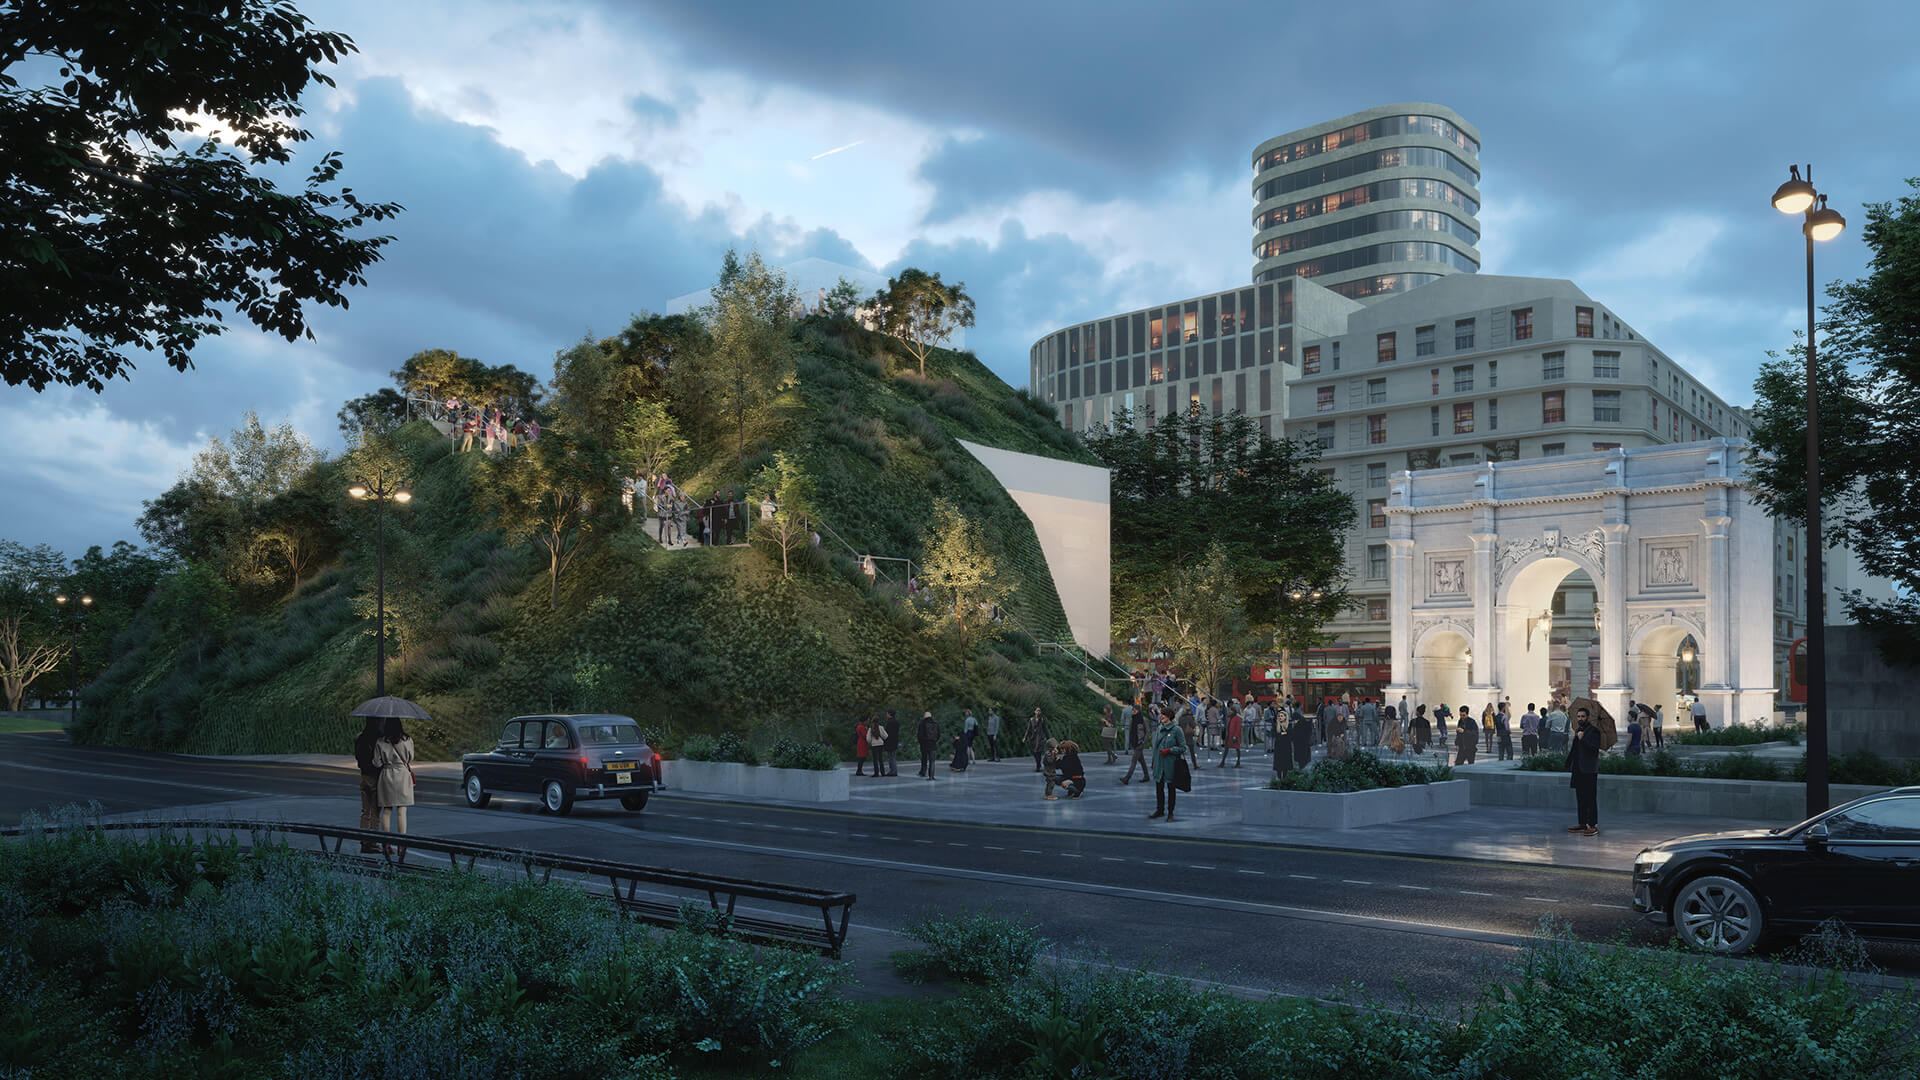 The Hill presents a new perspective of the Marble Arch | Marble Arch Hill designed by MVRDV| STIRworld